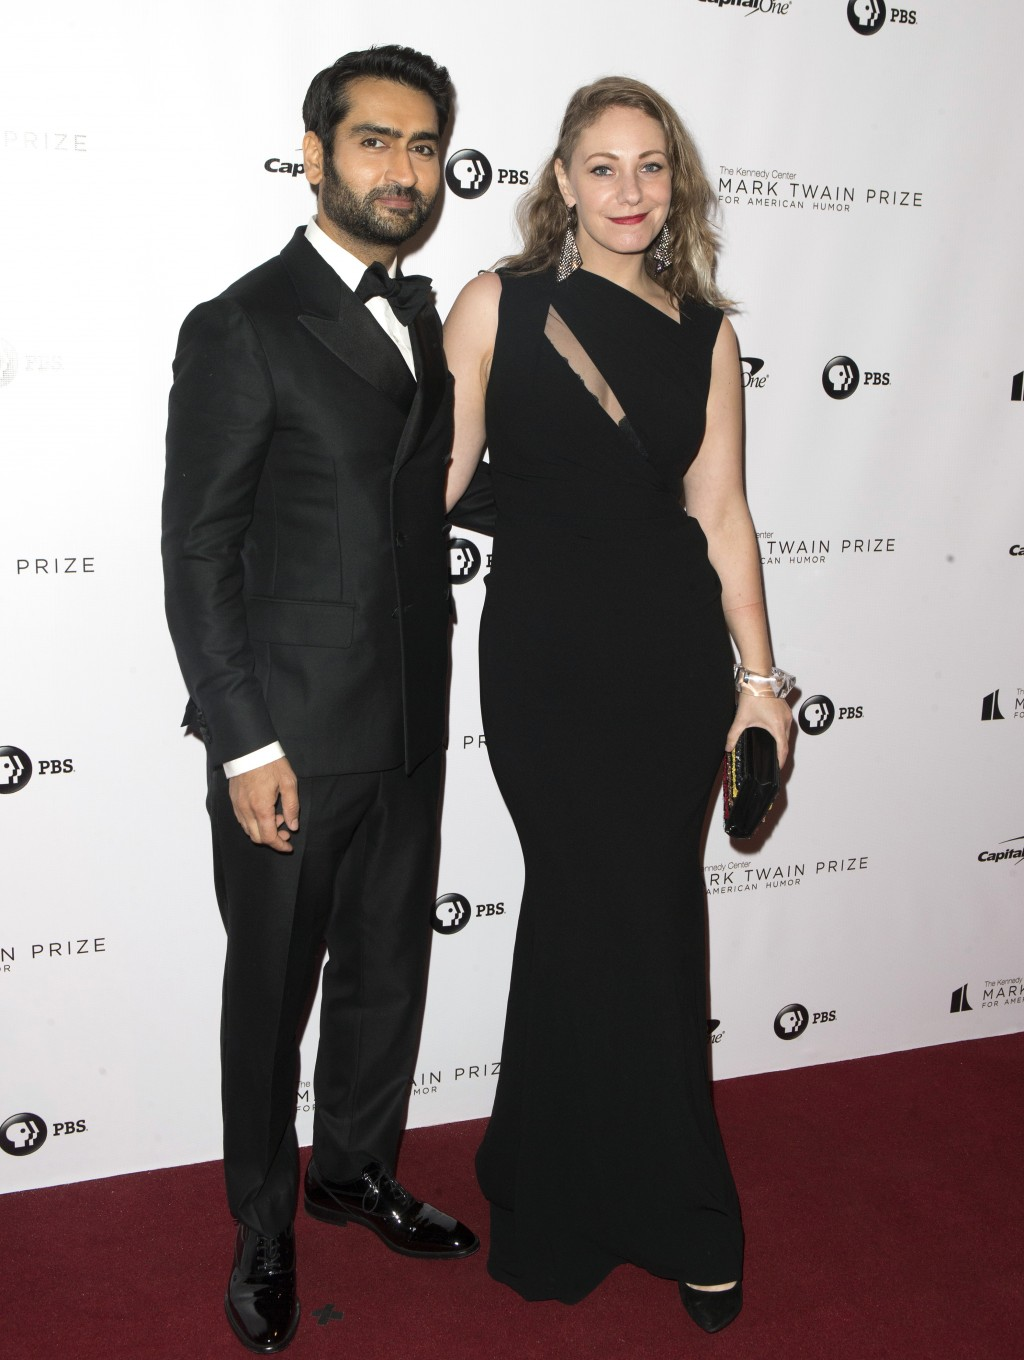 Kumail Nanjiani and his wife, Emily Gordon, arrive at the Kennedy Center for the Performing Arts for the 21st Annual Mark Twain Prize for American Hum...